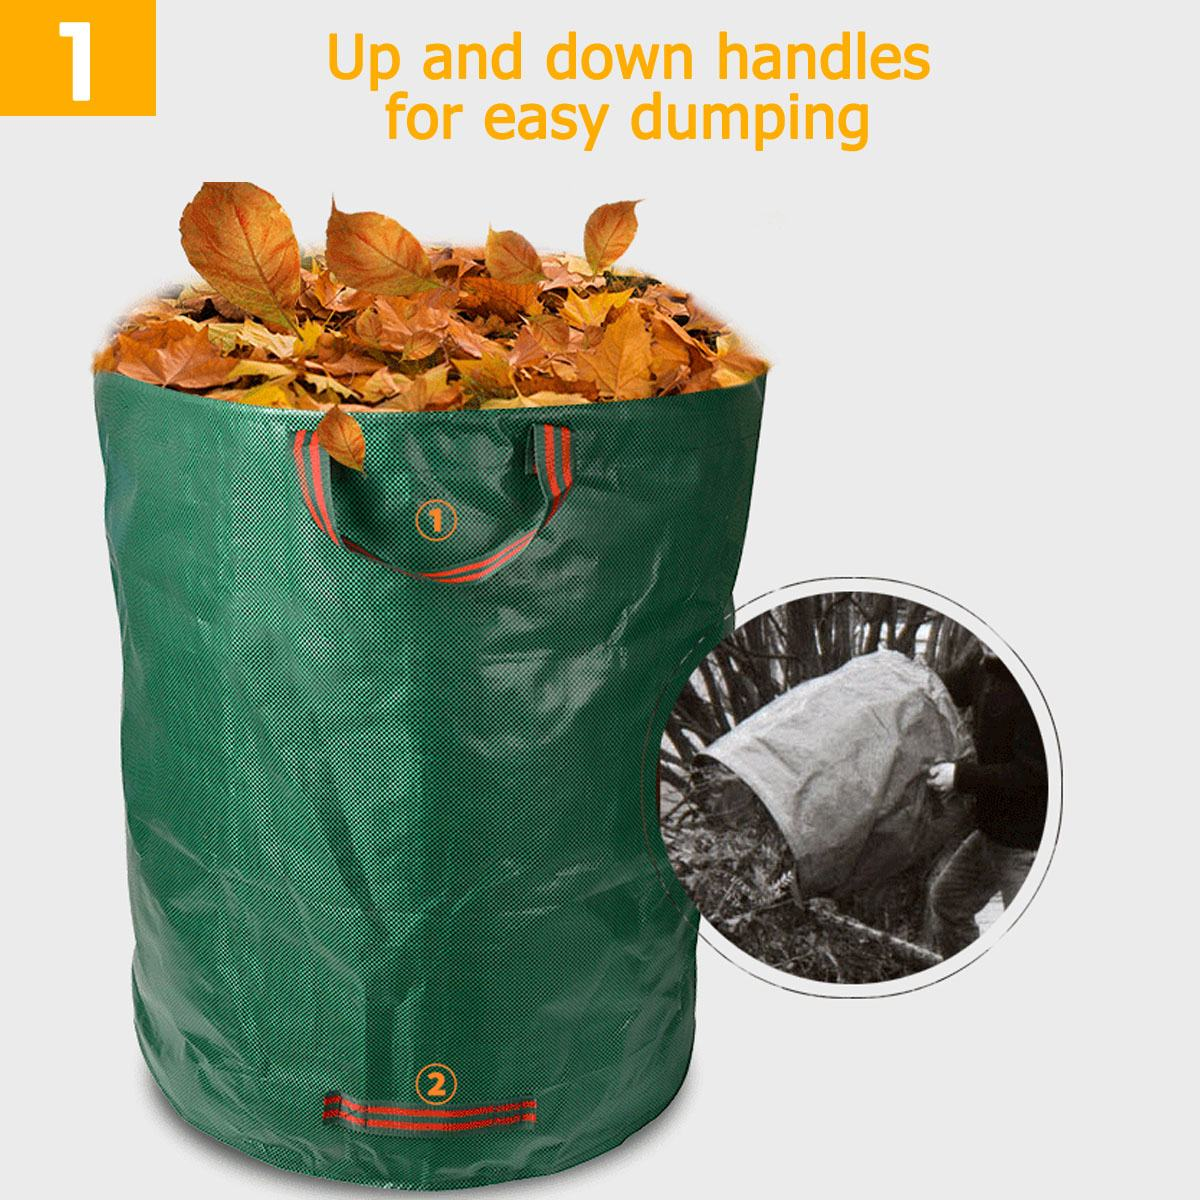 Large Capacity Heavy Duty Garden House Waste Trash Bag Durable Waterproof Yard Leaf Grass Container Storage 120L 300L 500L